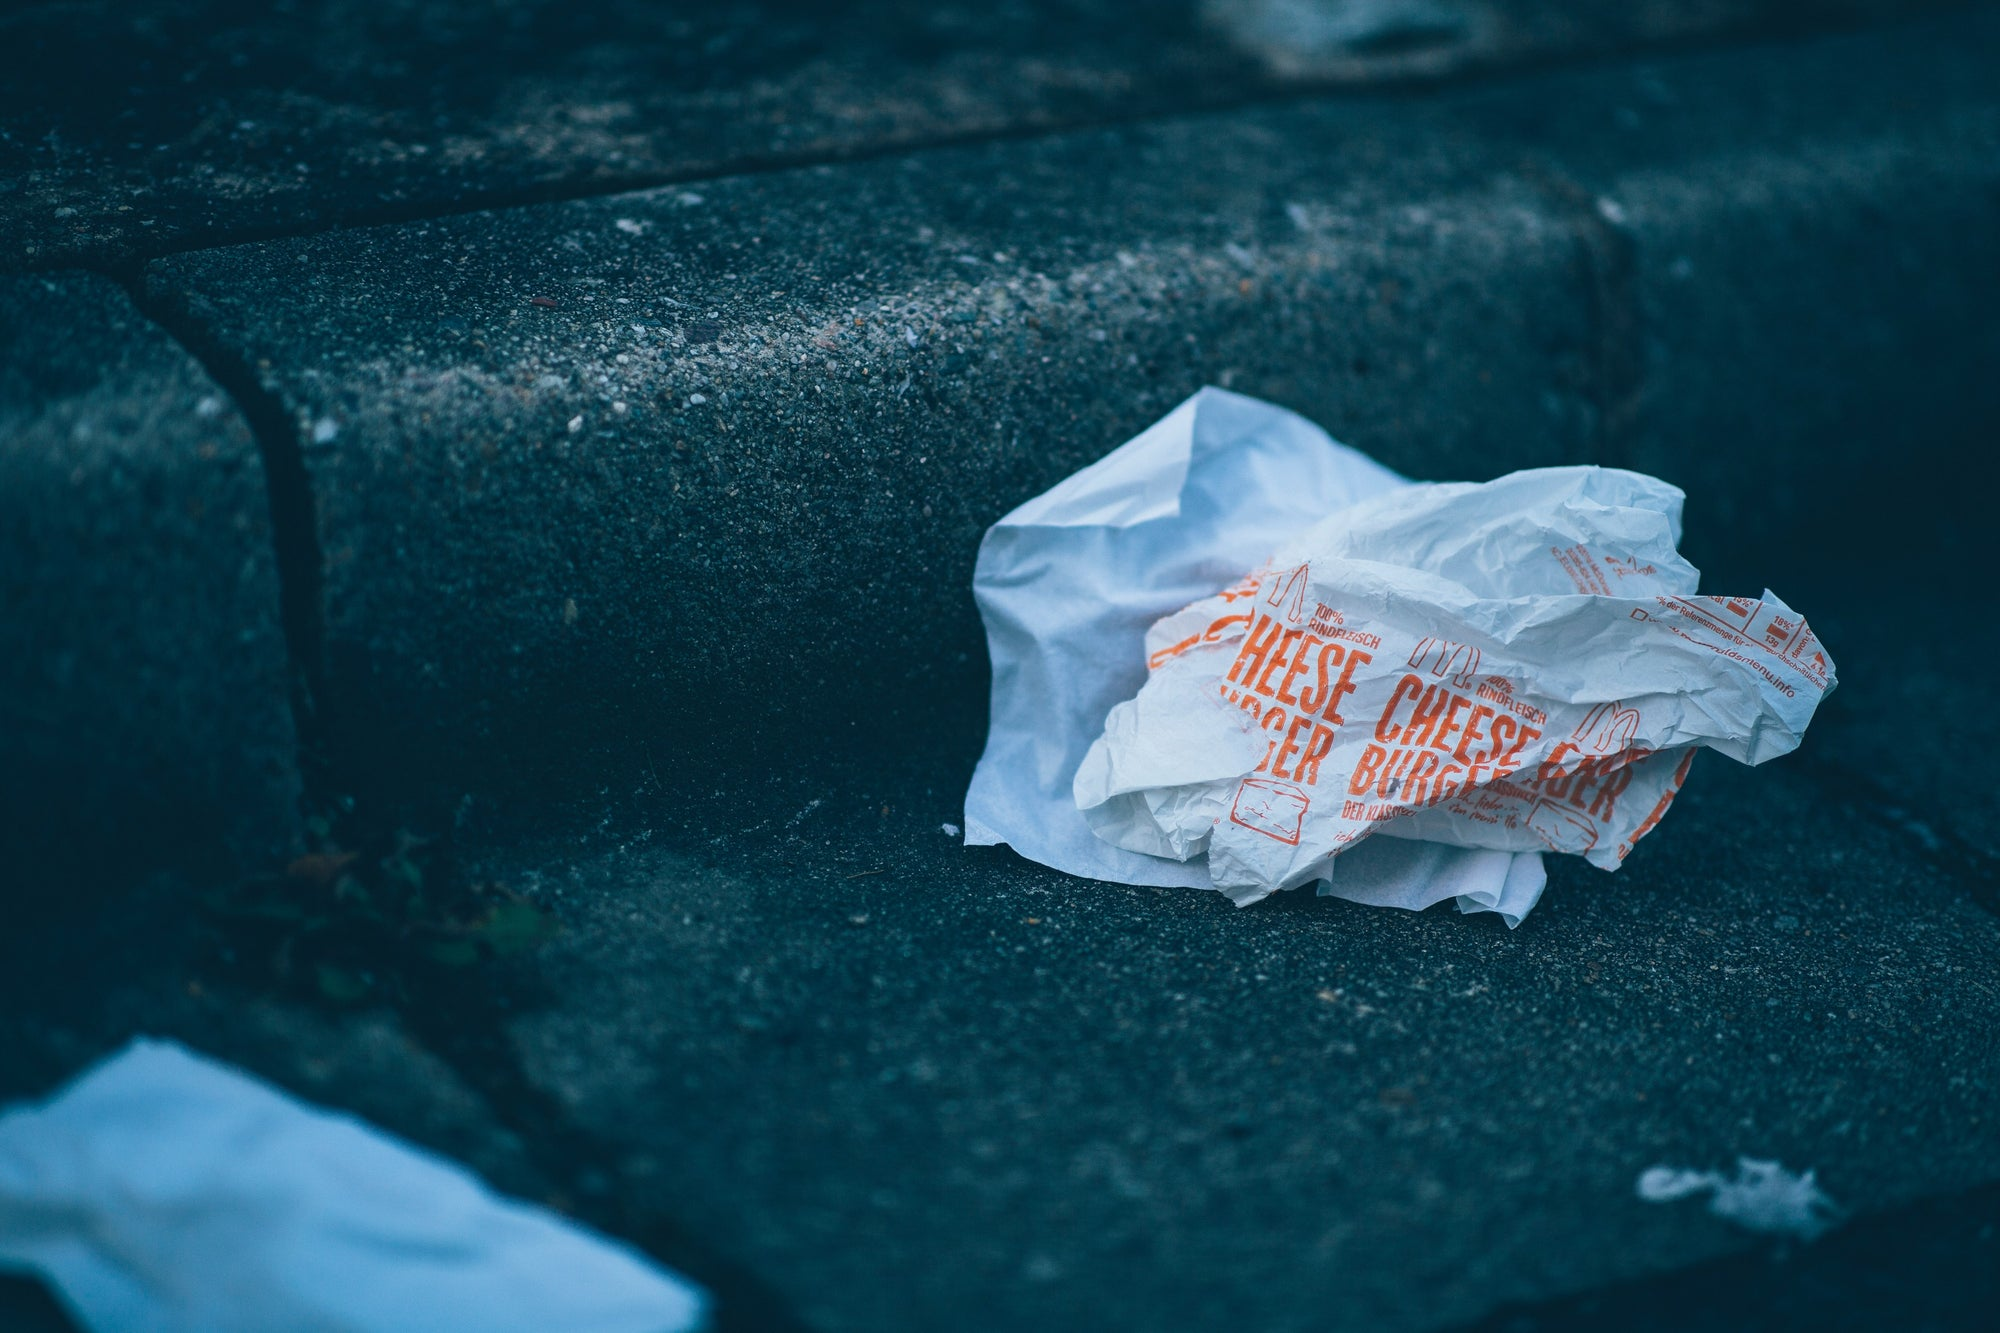 Can picking up trash, while you walk, improve your mental health?